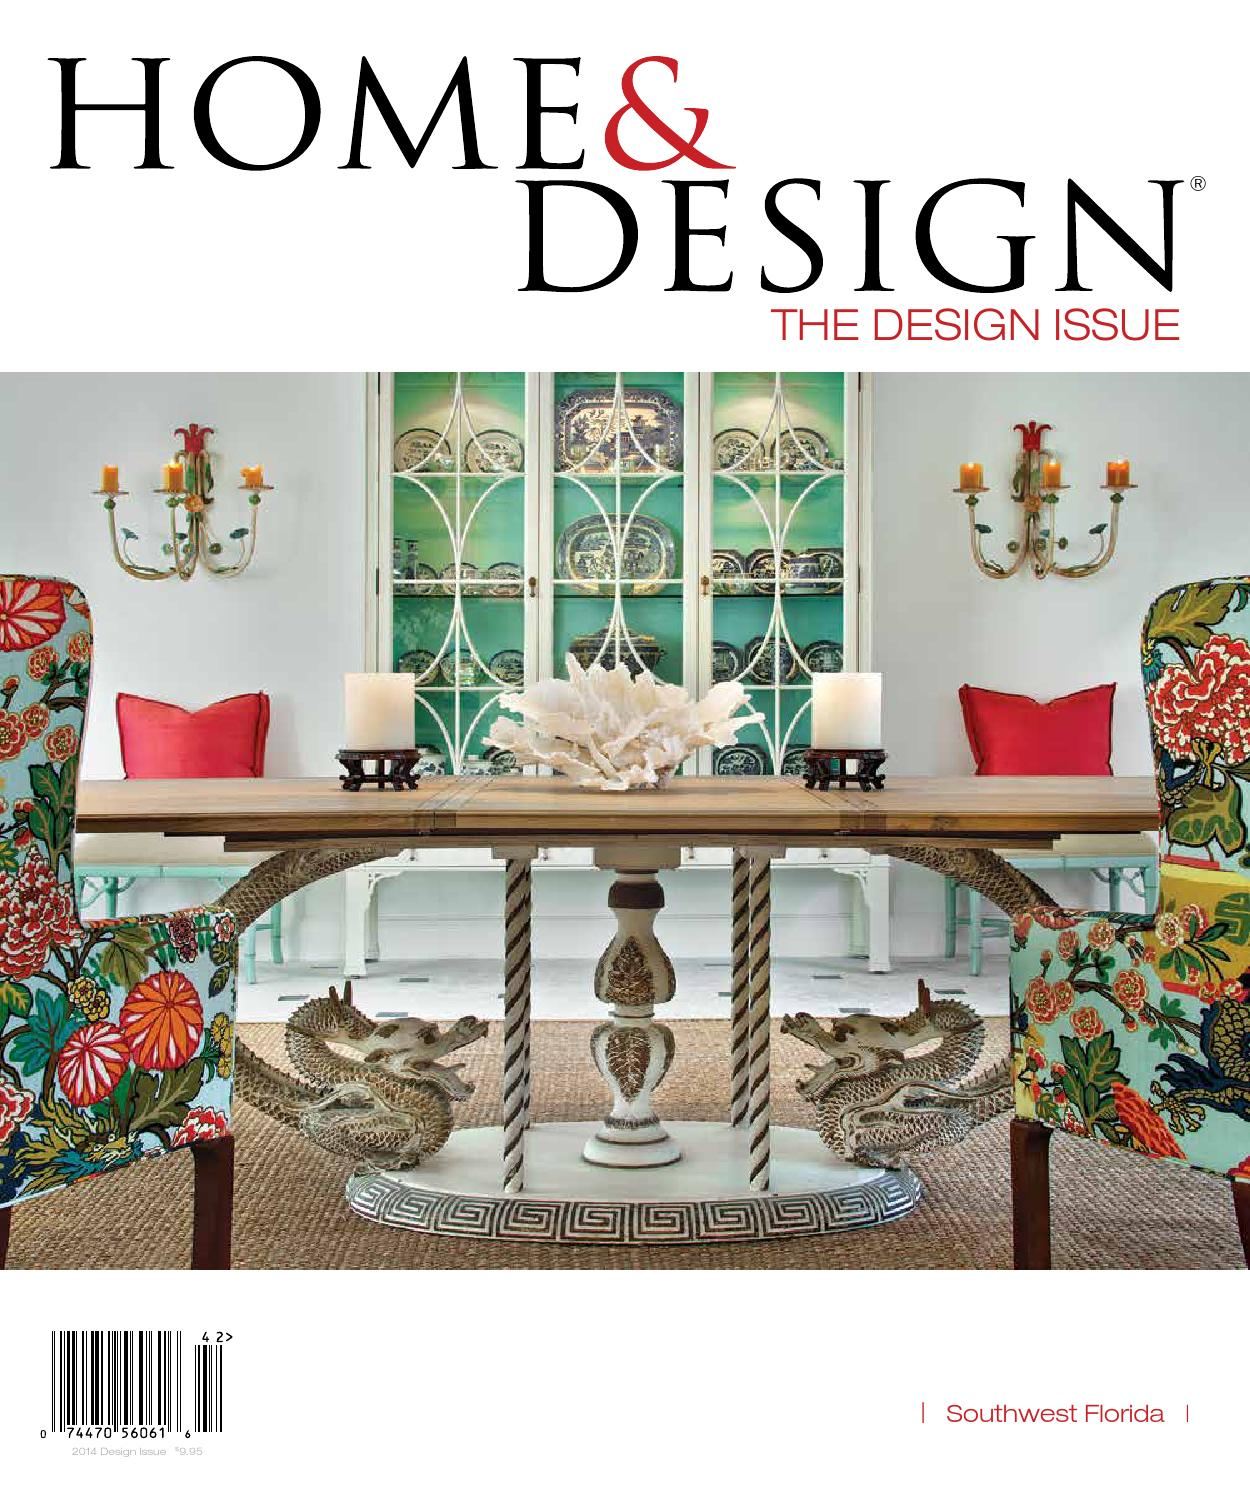 Home & Design Magazine | Design Issue 2014 | Southwest ...